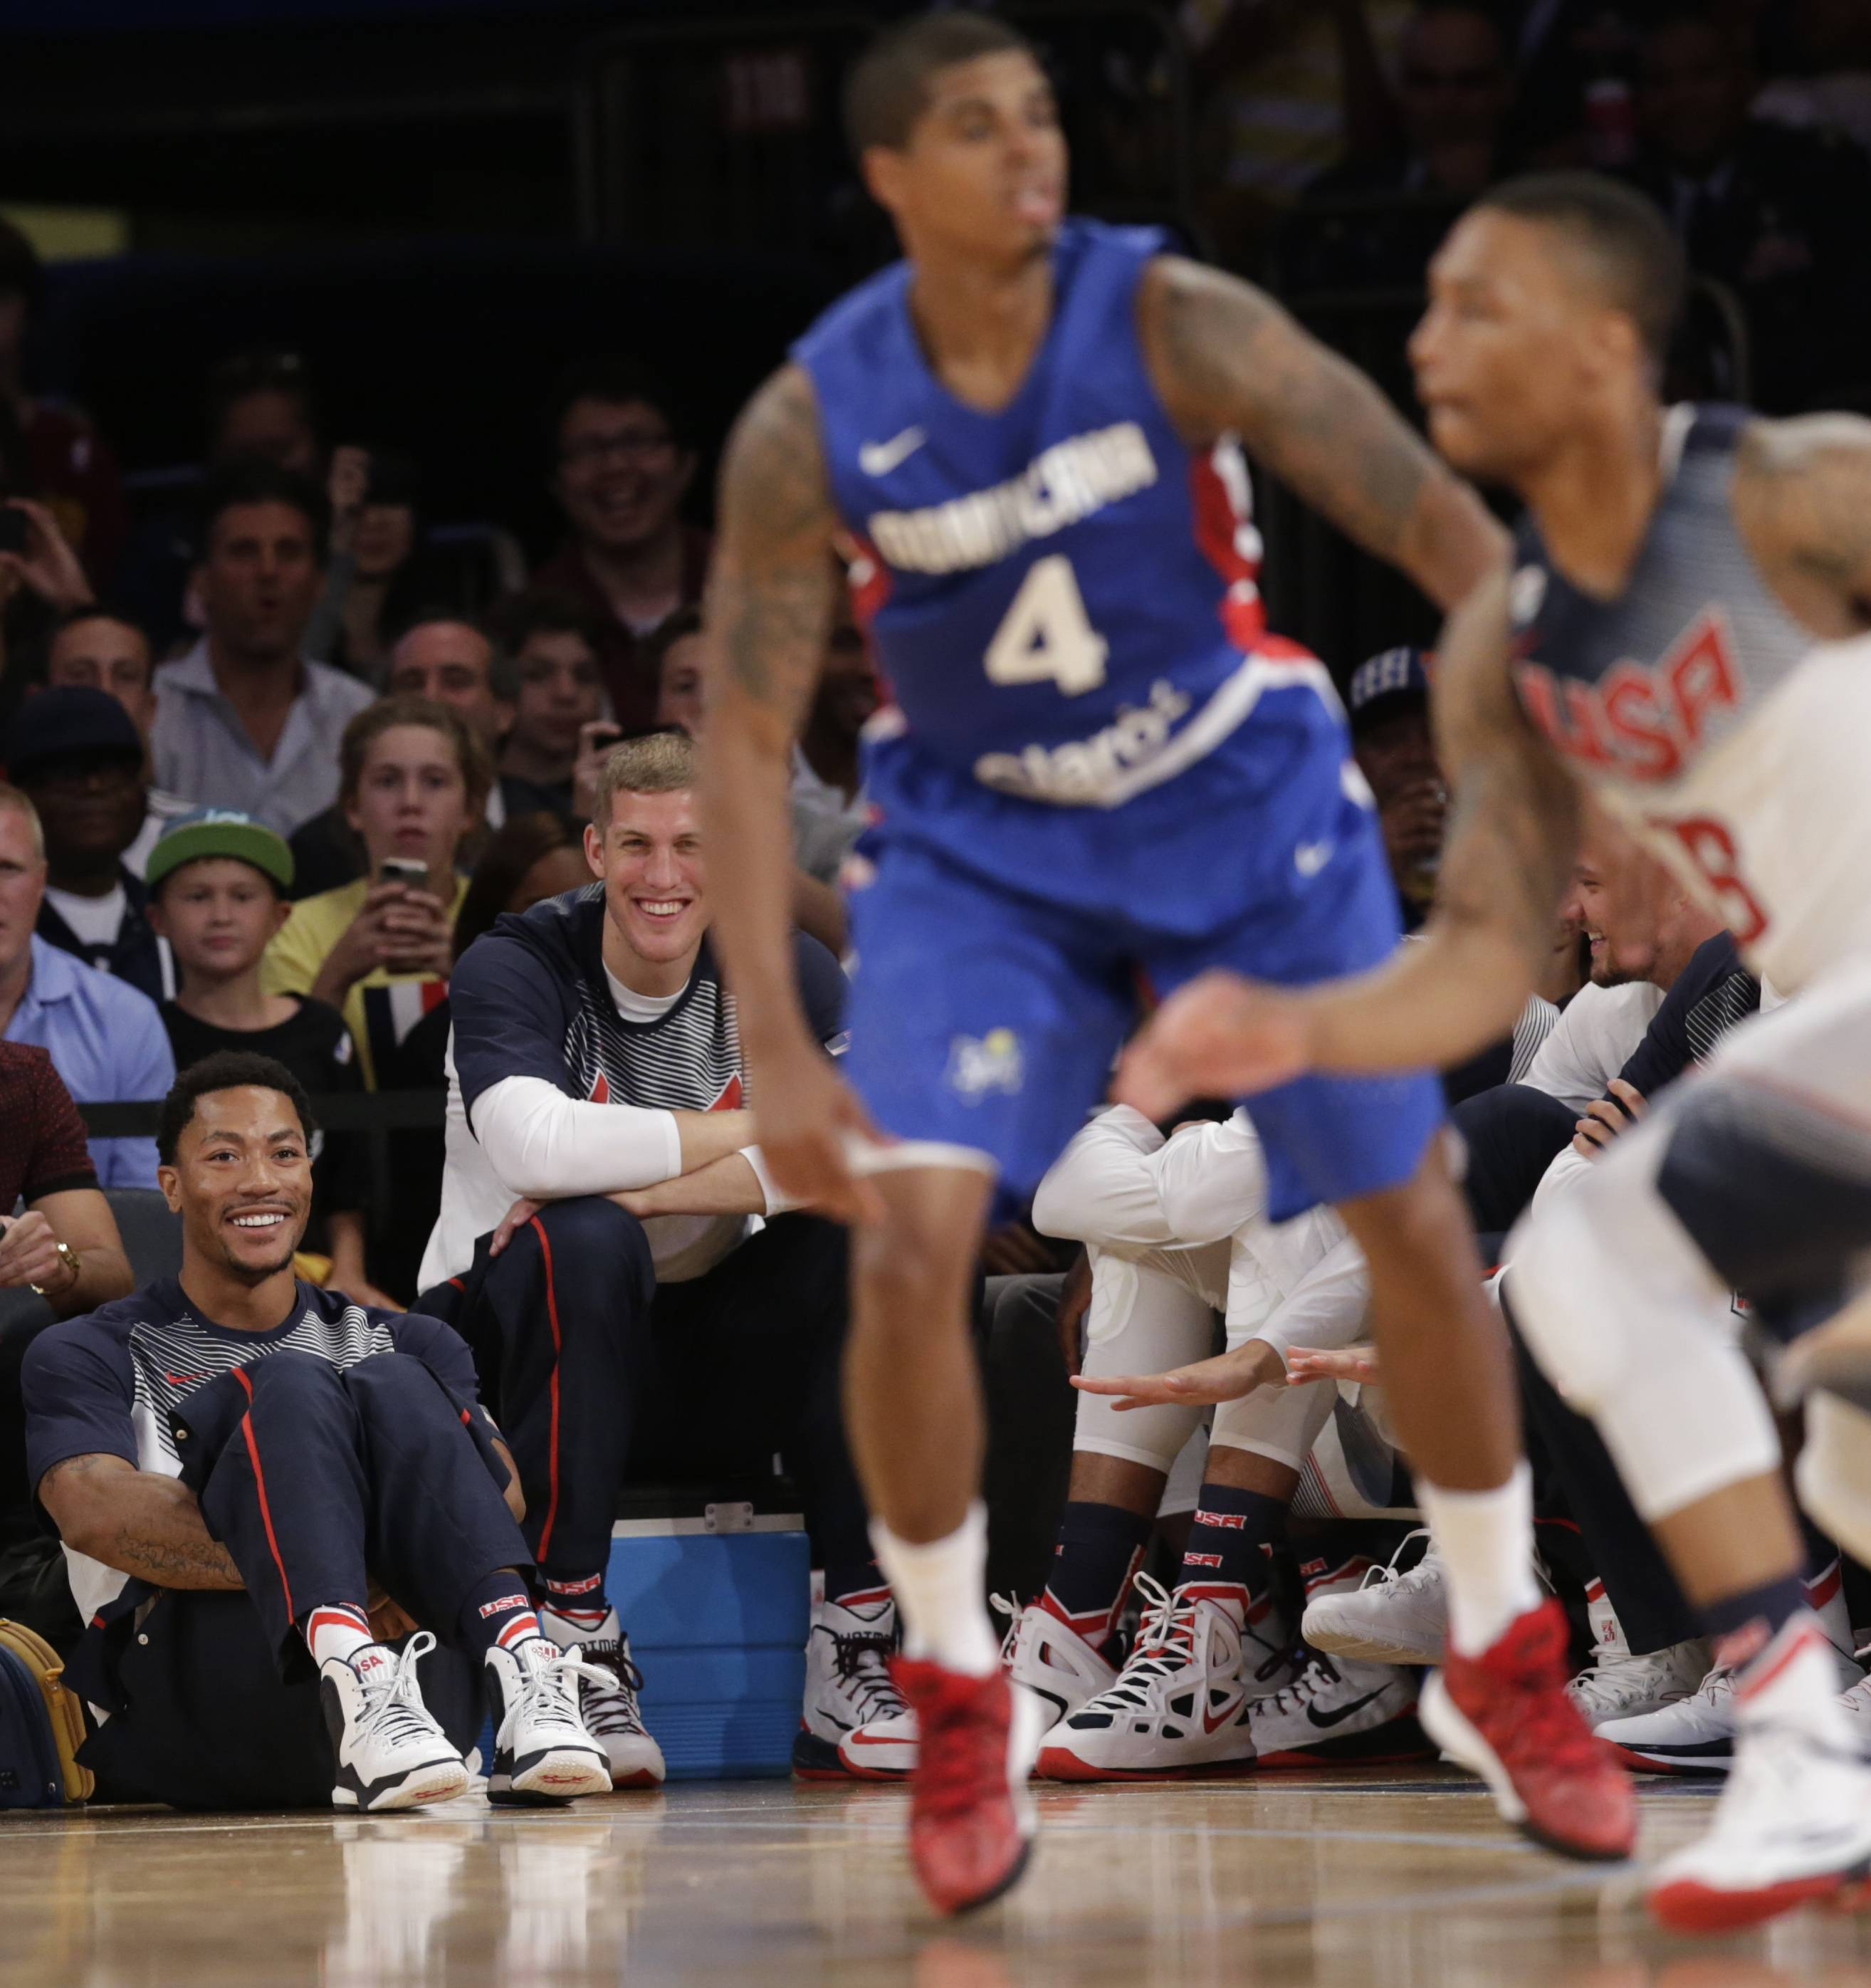 U.S. guard Derrick Rose, lower left, and forward Mason Plumlee, next to Rose, watch the second half of an exhibition basketball game Wednesday between the United States and the Dominican Republic at Madison Square Garden in New York. The U.S. team won 105-62.